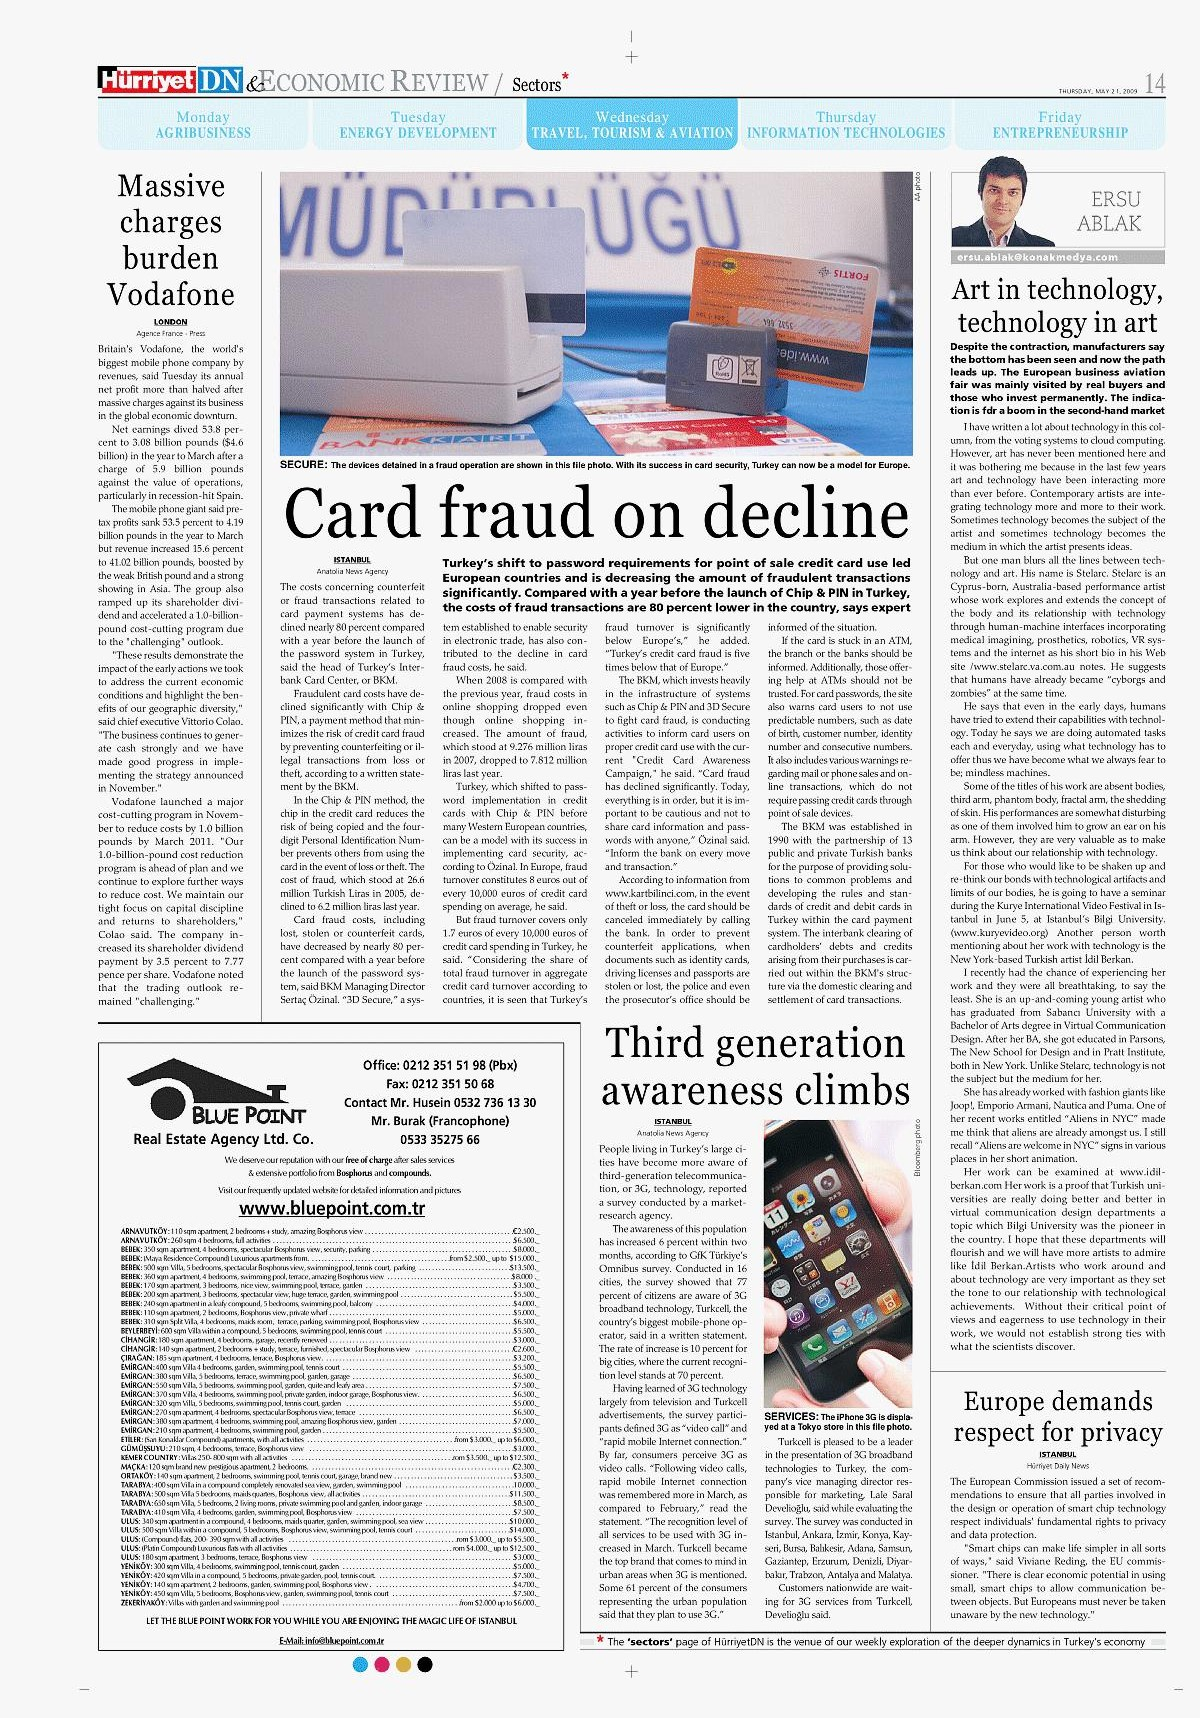 HurriyetDailyNews_21.05.09.jpg